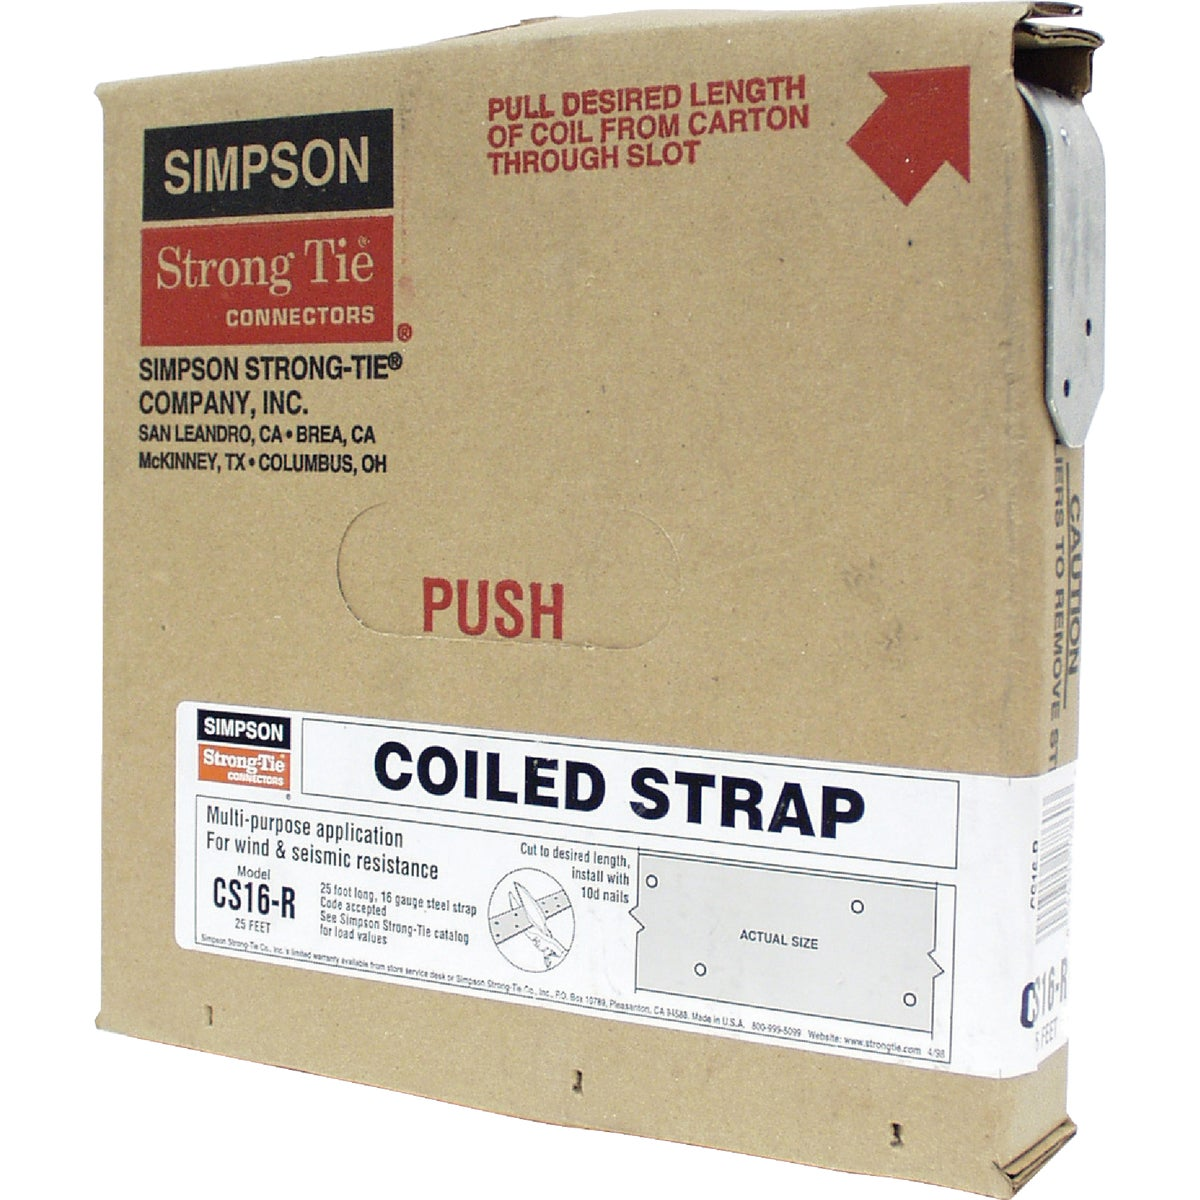 25' 16GA COILED STRAP - CS16-R by Simpson Strong Tie